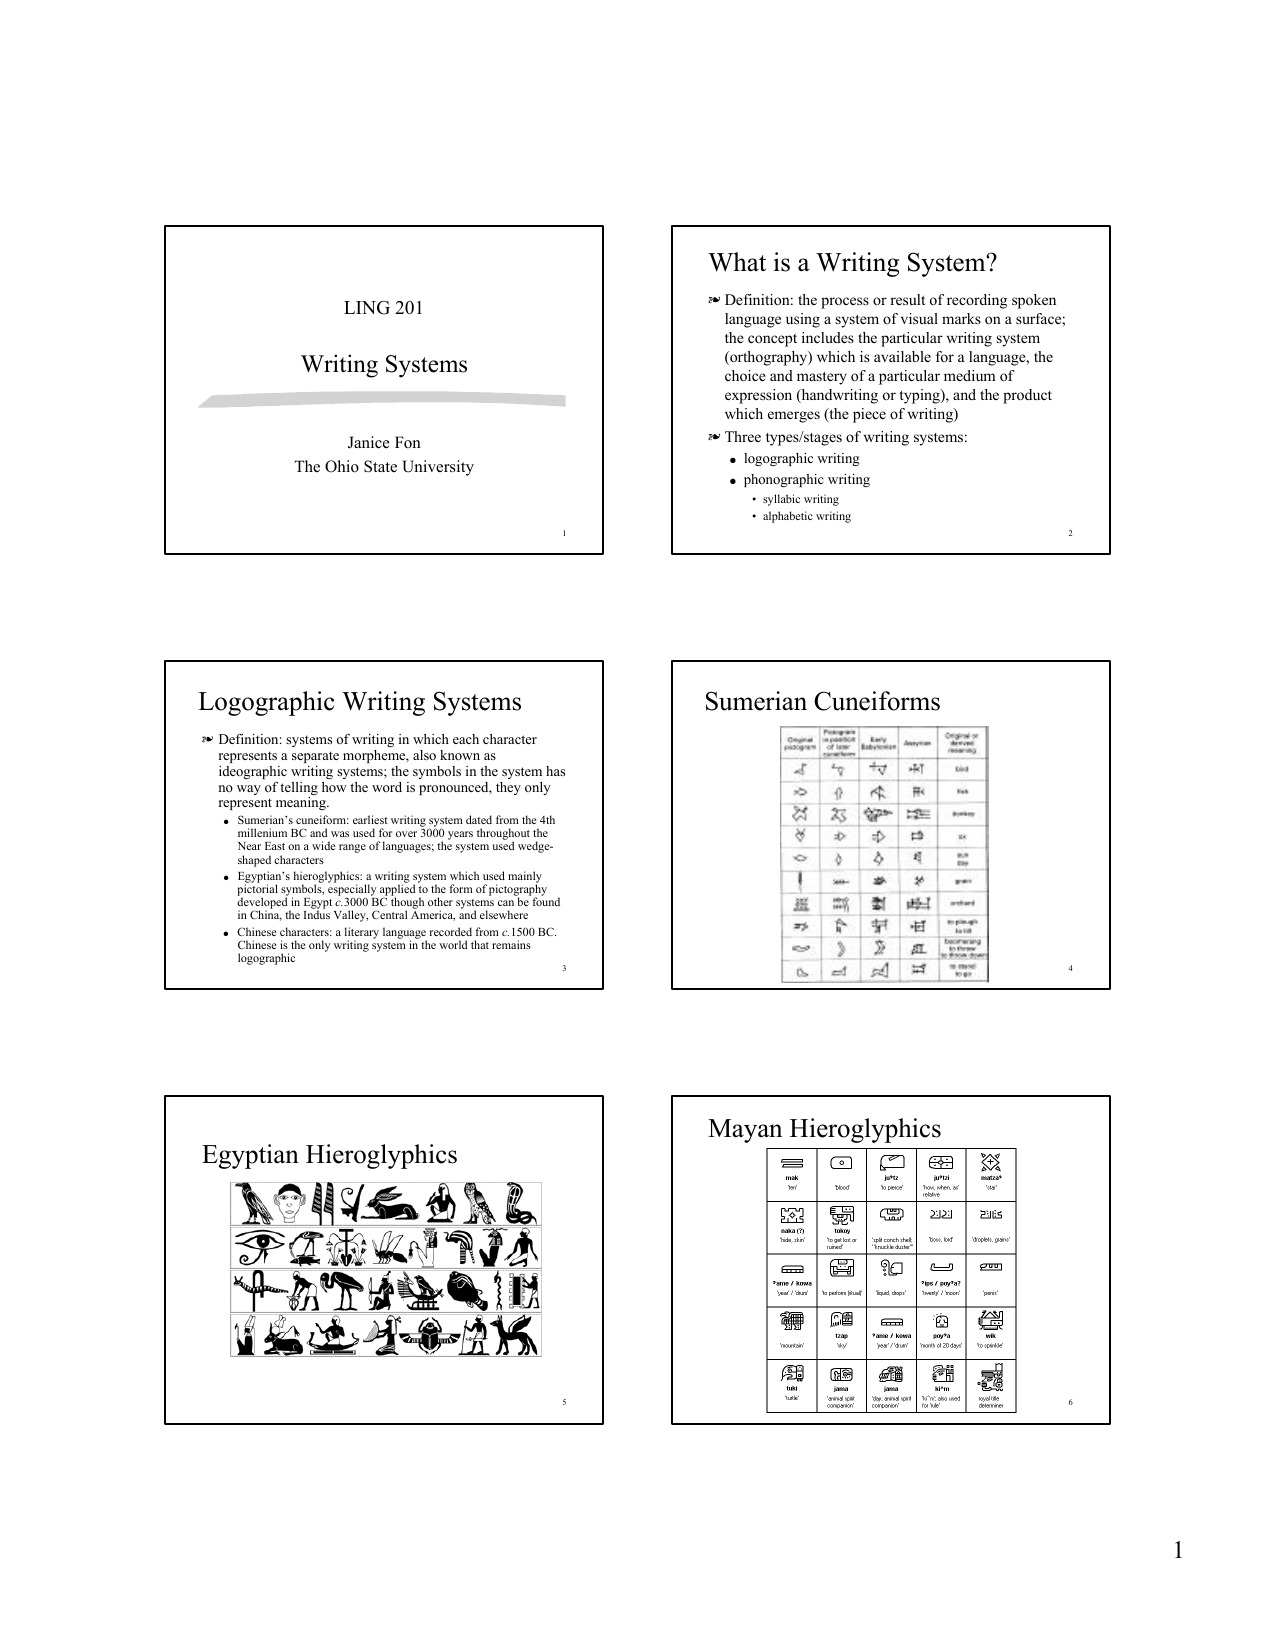 What Is A Writing System Logographic Writing Systems Sumerian